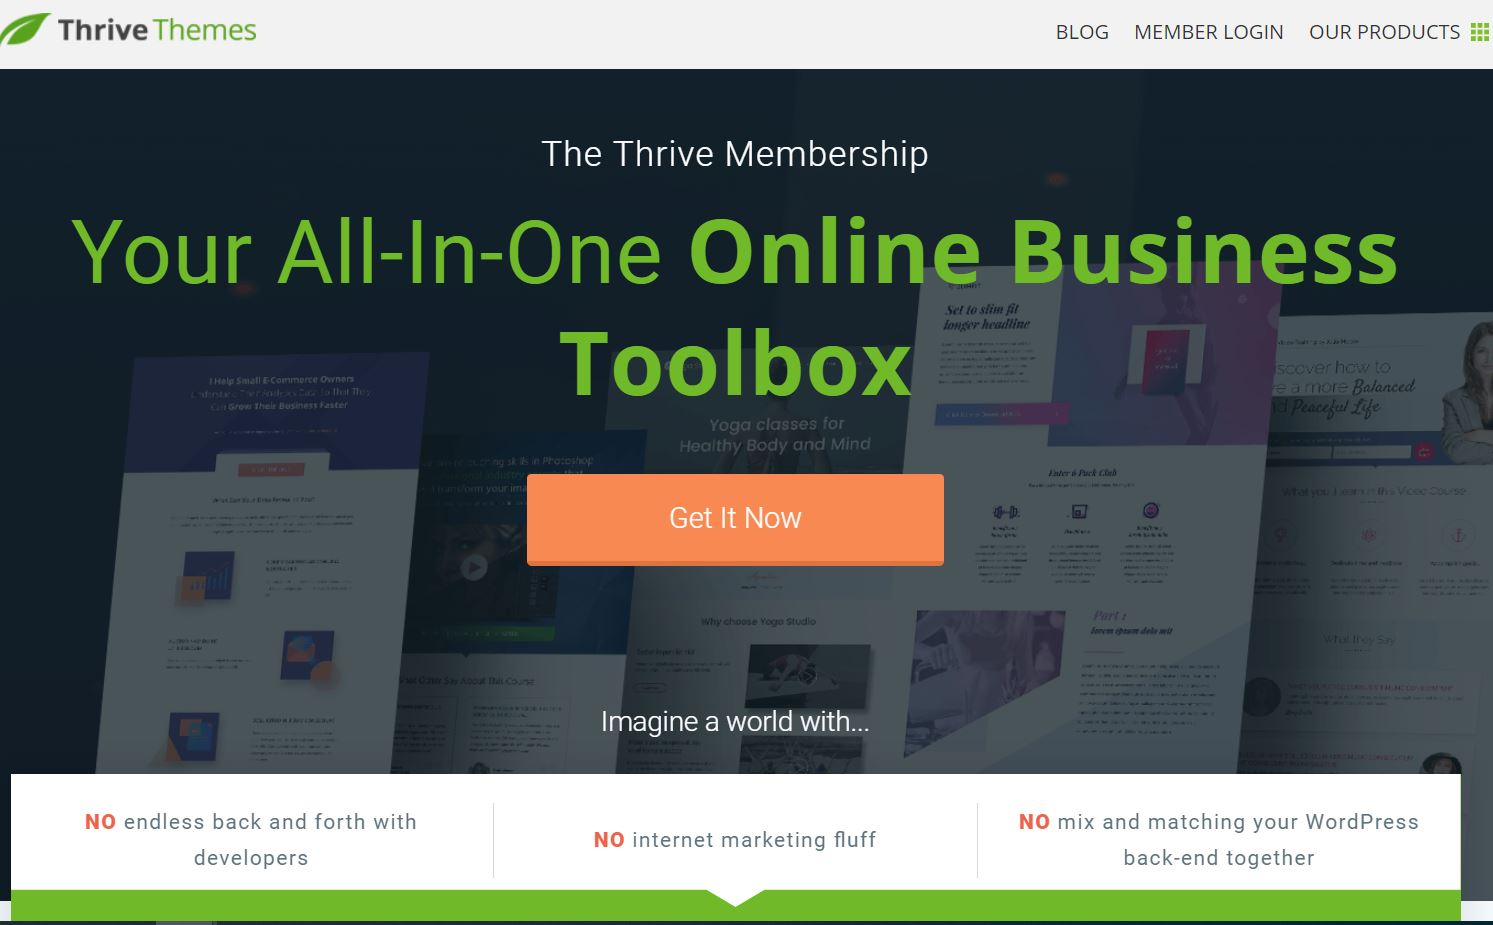 WordPress Themes Thrive Themes Coupon Code 10 Off 2020